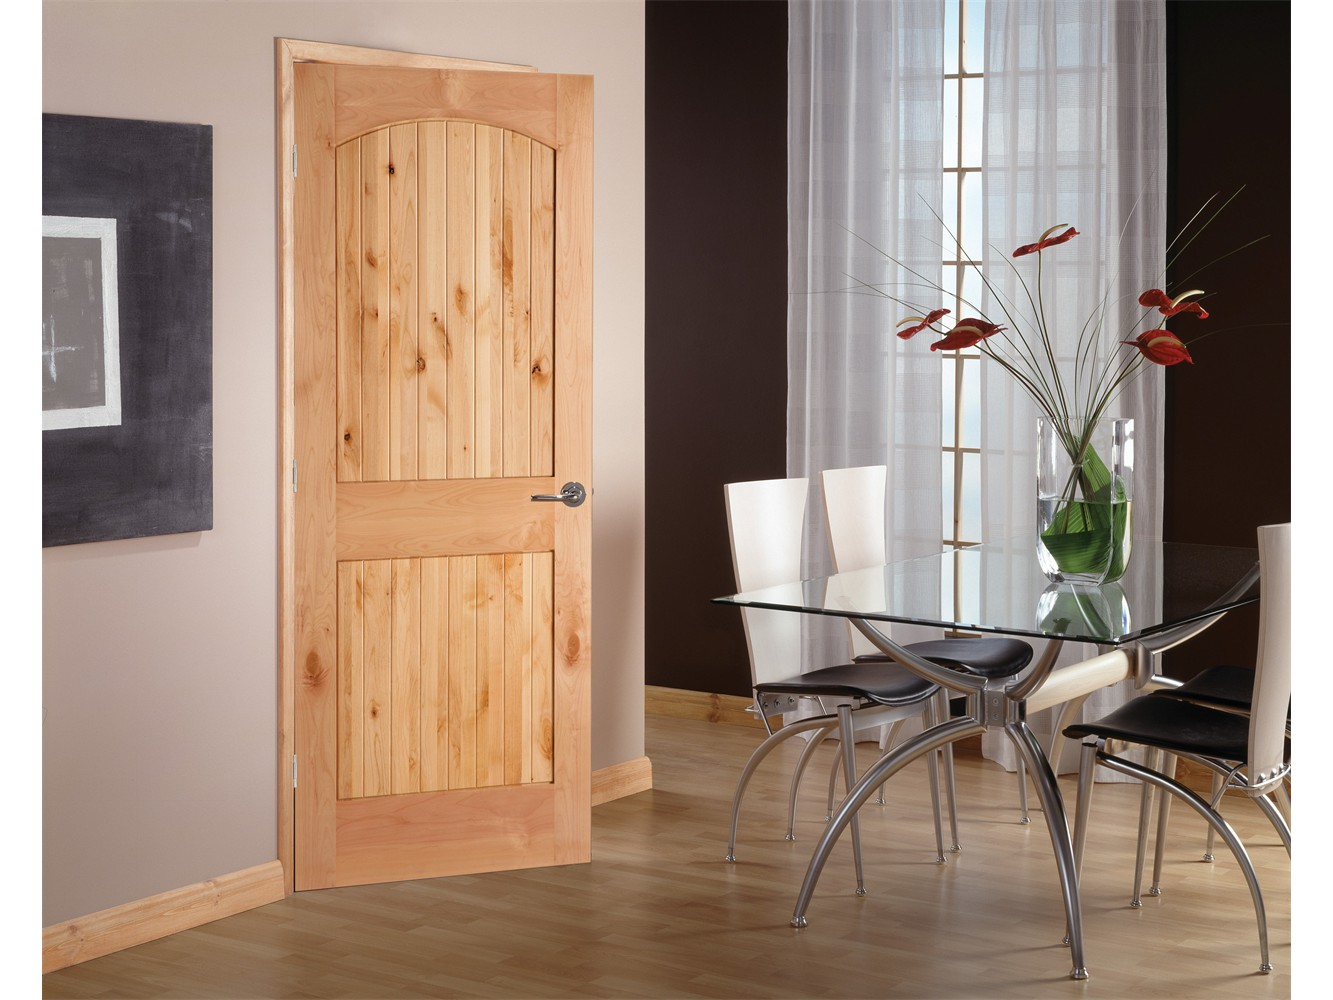 Mill Creek has the largest selection of interior doors in Oklahoma. Come by our showroom at 6201 S 129th East Ave and browse through our displays of doors ... & Tulsa Interior Doors | Mill Creek Lumber